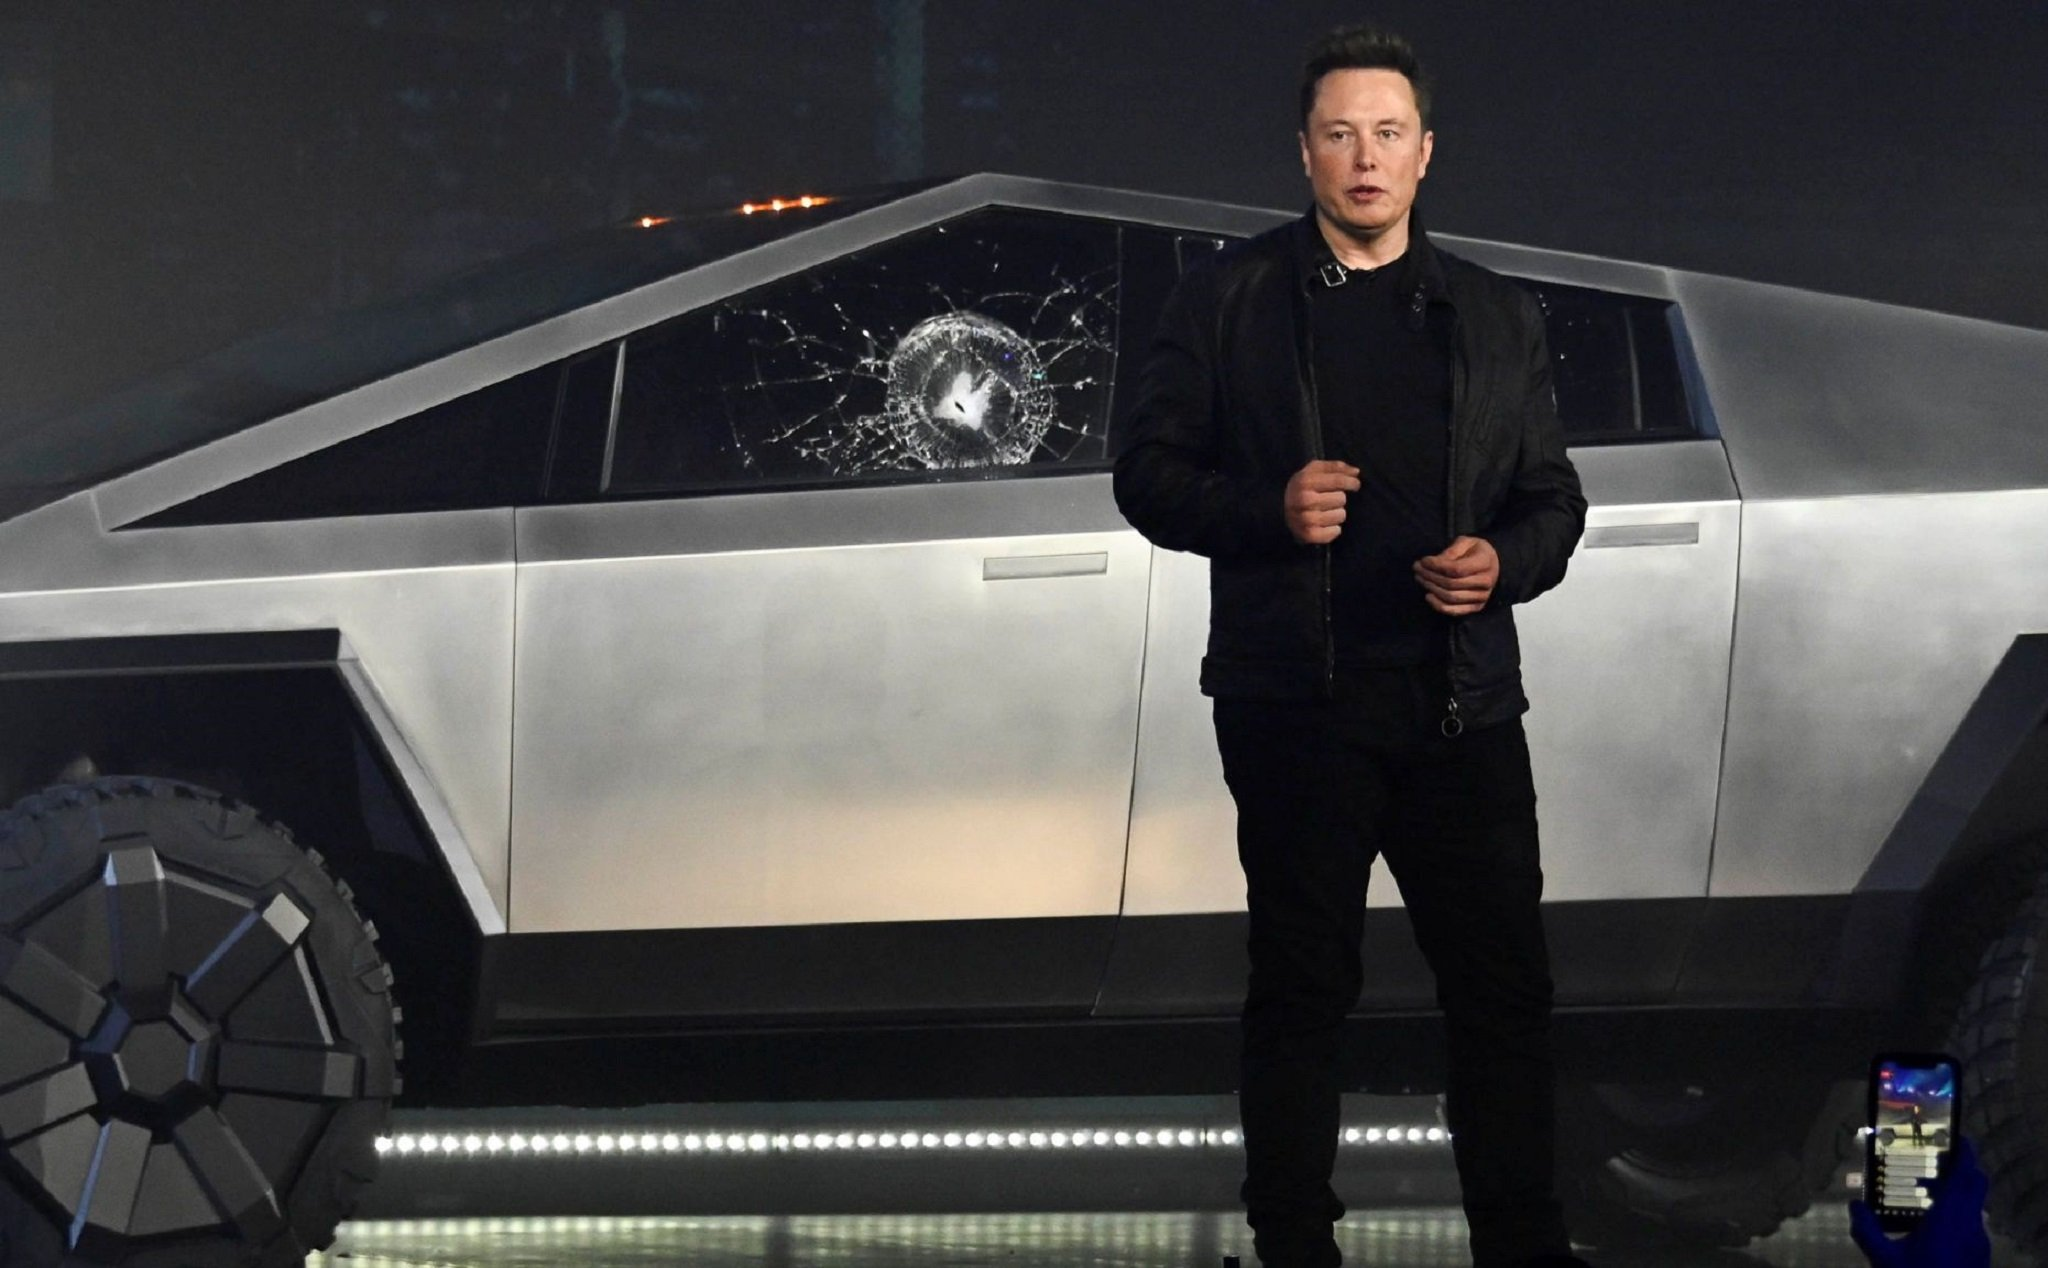 Elon Musk explained why the Cybertruck glass was broken during the launch